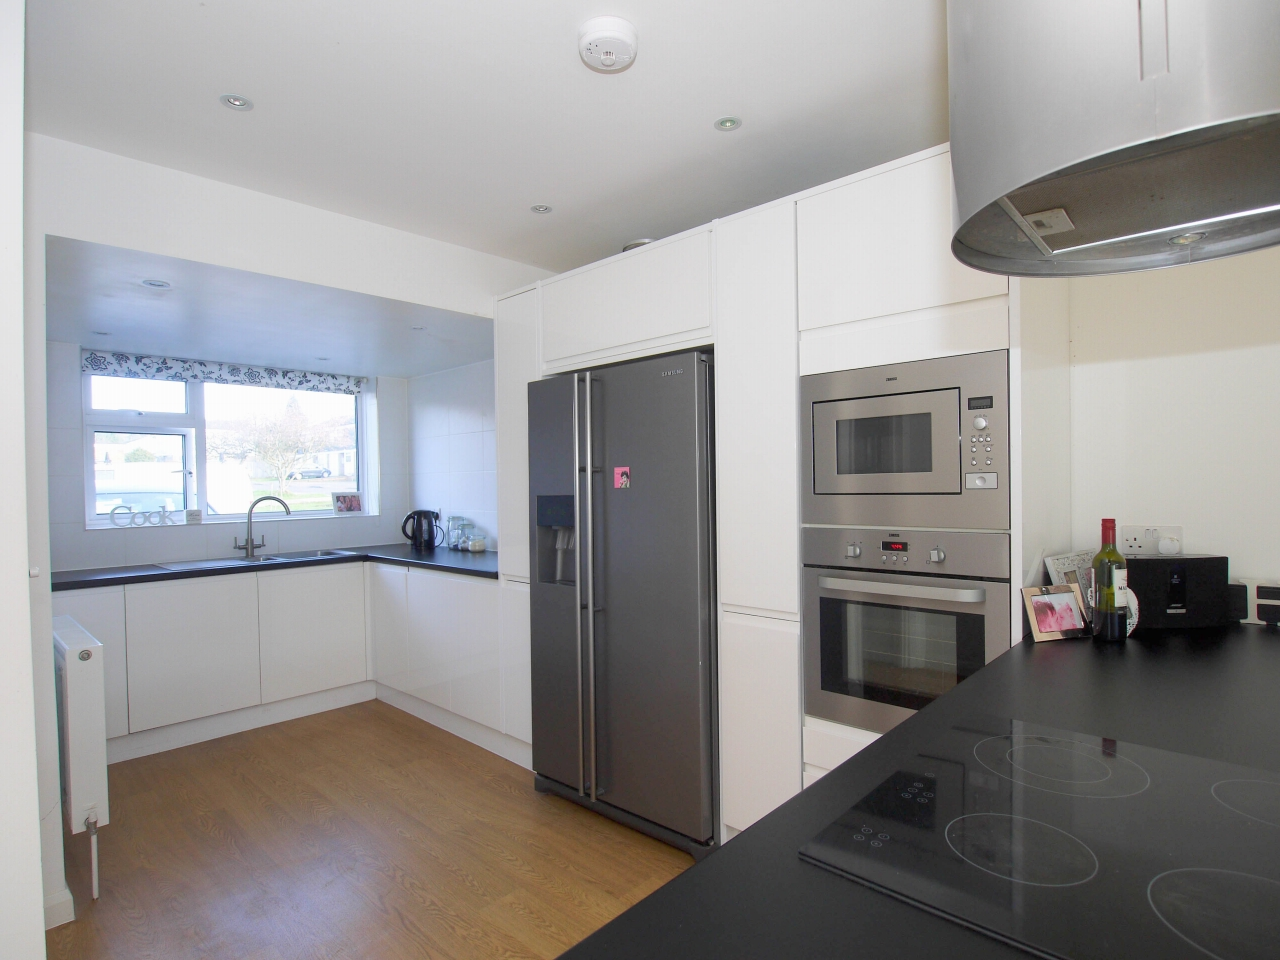 3 bedroom mid terraced house For Sale in Sevenoaks - Photograph 3